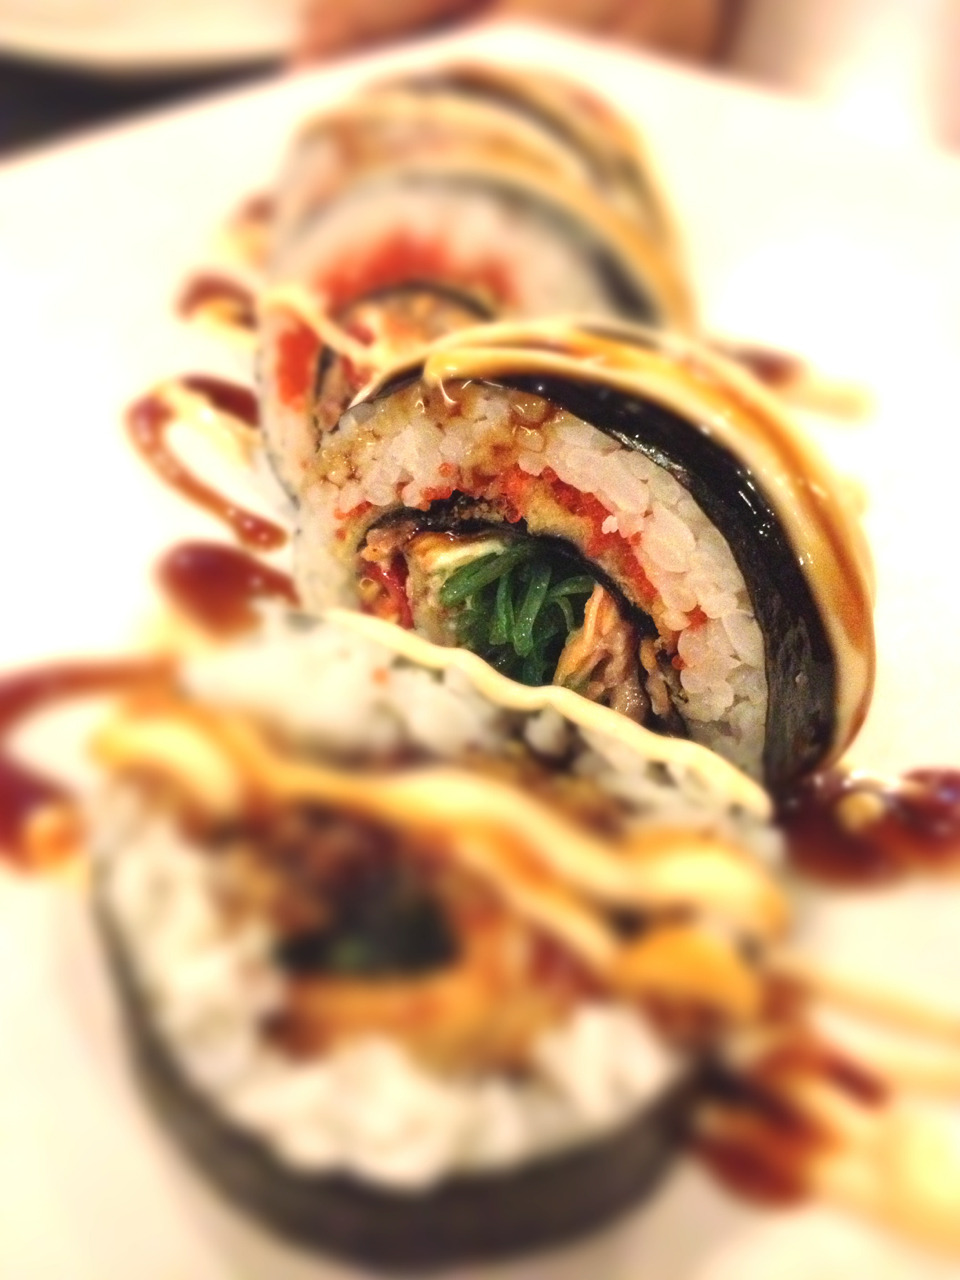 Joobu Special Roll from Sushi Joobu. I've been growing up in Kelapa Gading. Gading got tons of food from street food to restaurant. So much that even if you eat one different food each day, you won't finish trying everything for a year. This Sushi Joobu place has been there for years. I always pass it by when I was on my way to school but didn't even have a thought to stop by and try its food. So yeah me and my friends were craving for sushi and decided to try this place. So here we go…. This Joobu Special roll was huge, bigger than the usual california roll. Rice was stuffed with seaweed, salmon, tobiko, and some other thing that I can't recall. But it was great! All the flavor in one bite.. Nyumm..